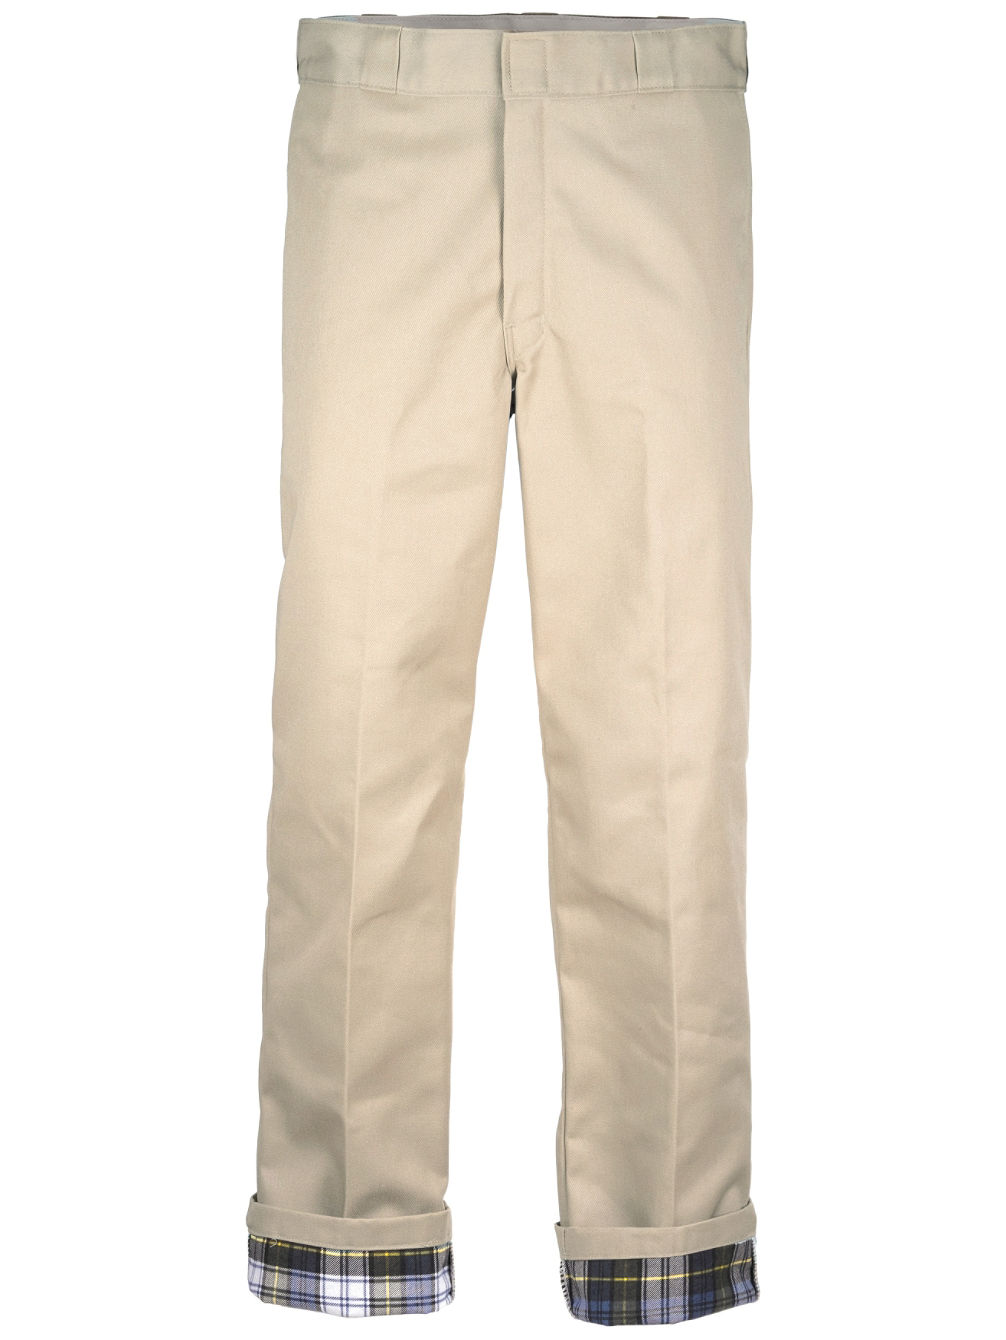 1b7a5351 Buy Dickies Flannel Lined Work Pants online at Blue Tomato